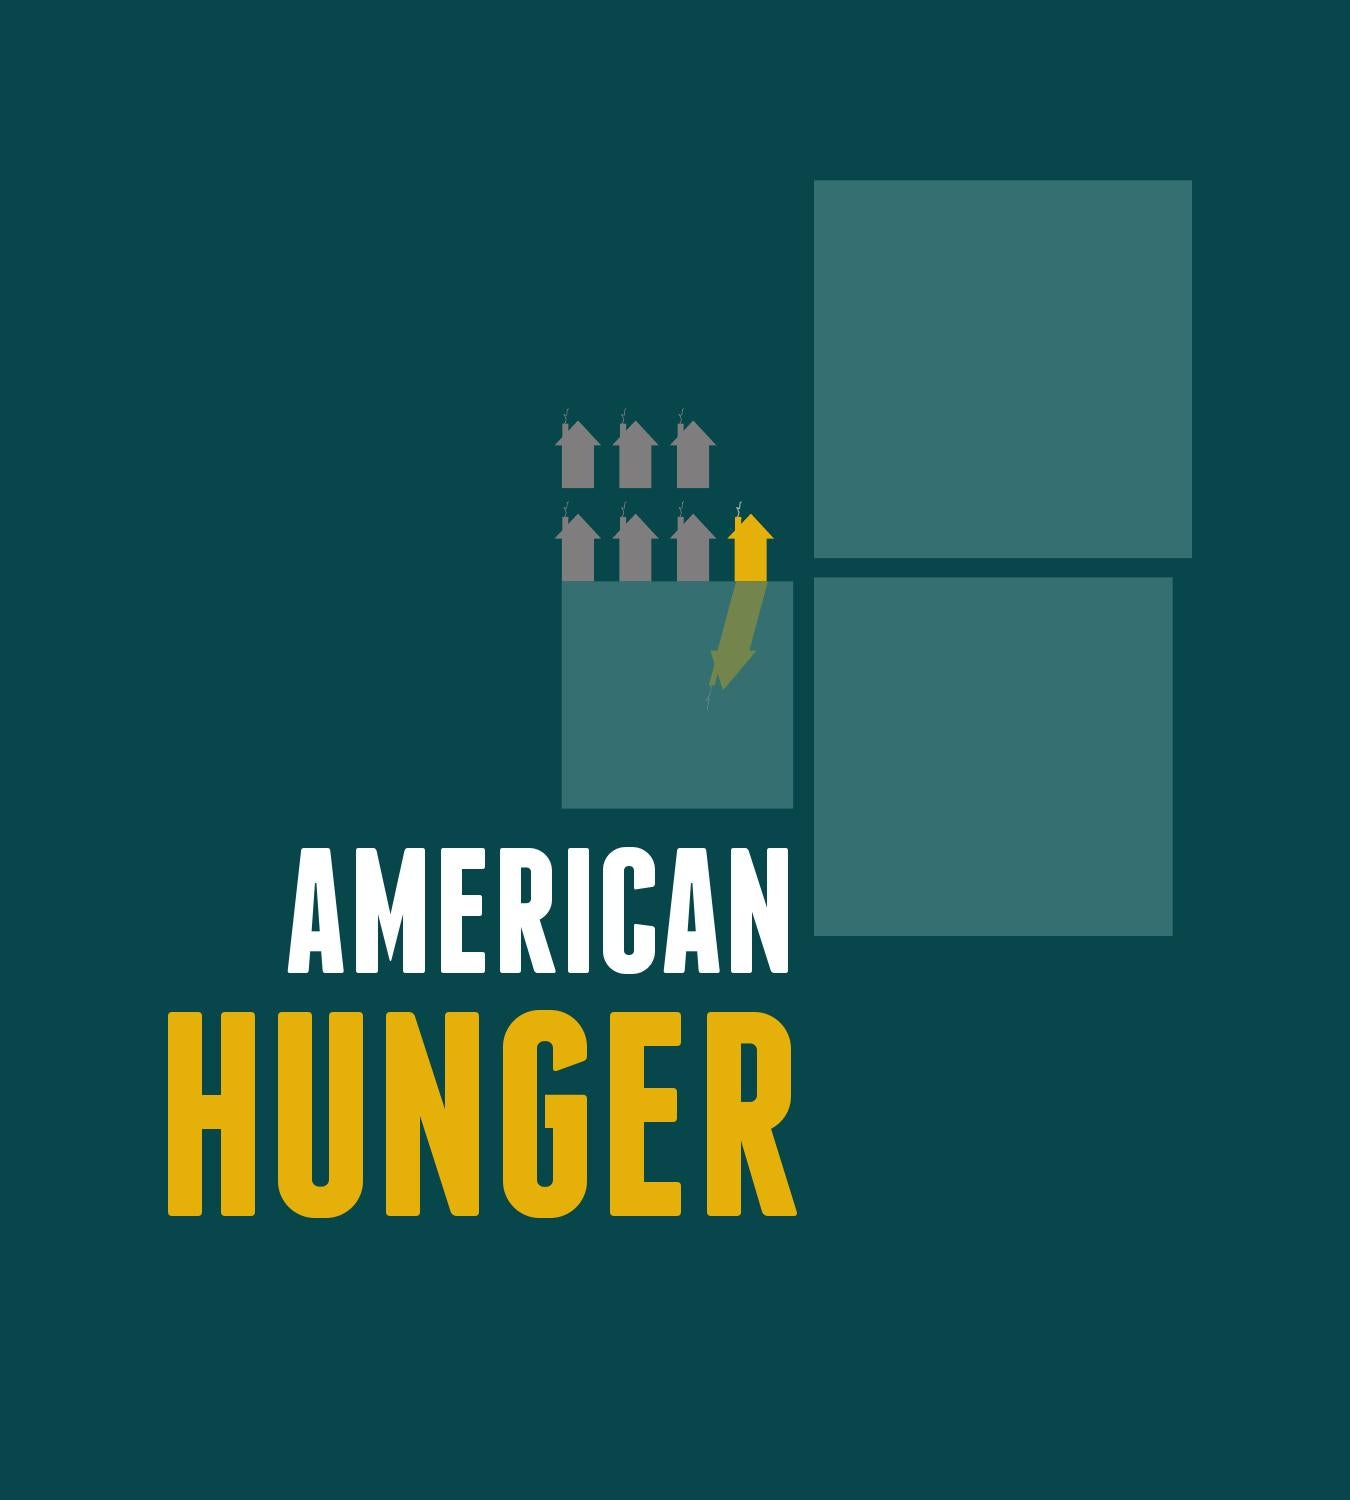 american hunger 1 in 6 people in america face hunger the usda defines food insecurity as the lack of access, at times, to enough food for all household members in 2011, households with children reported a significantly higher food insecurity rate than households without children: 206% vs 122.